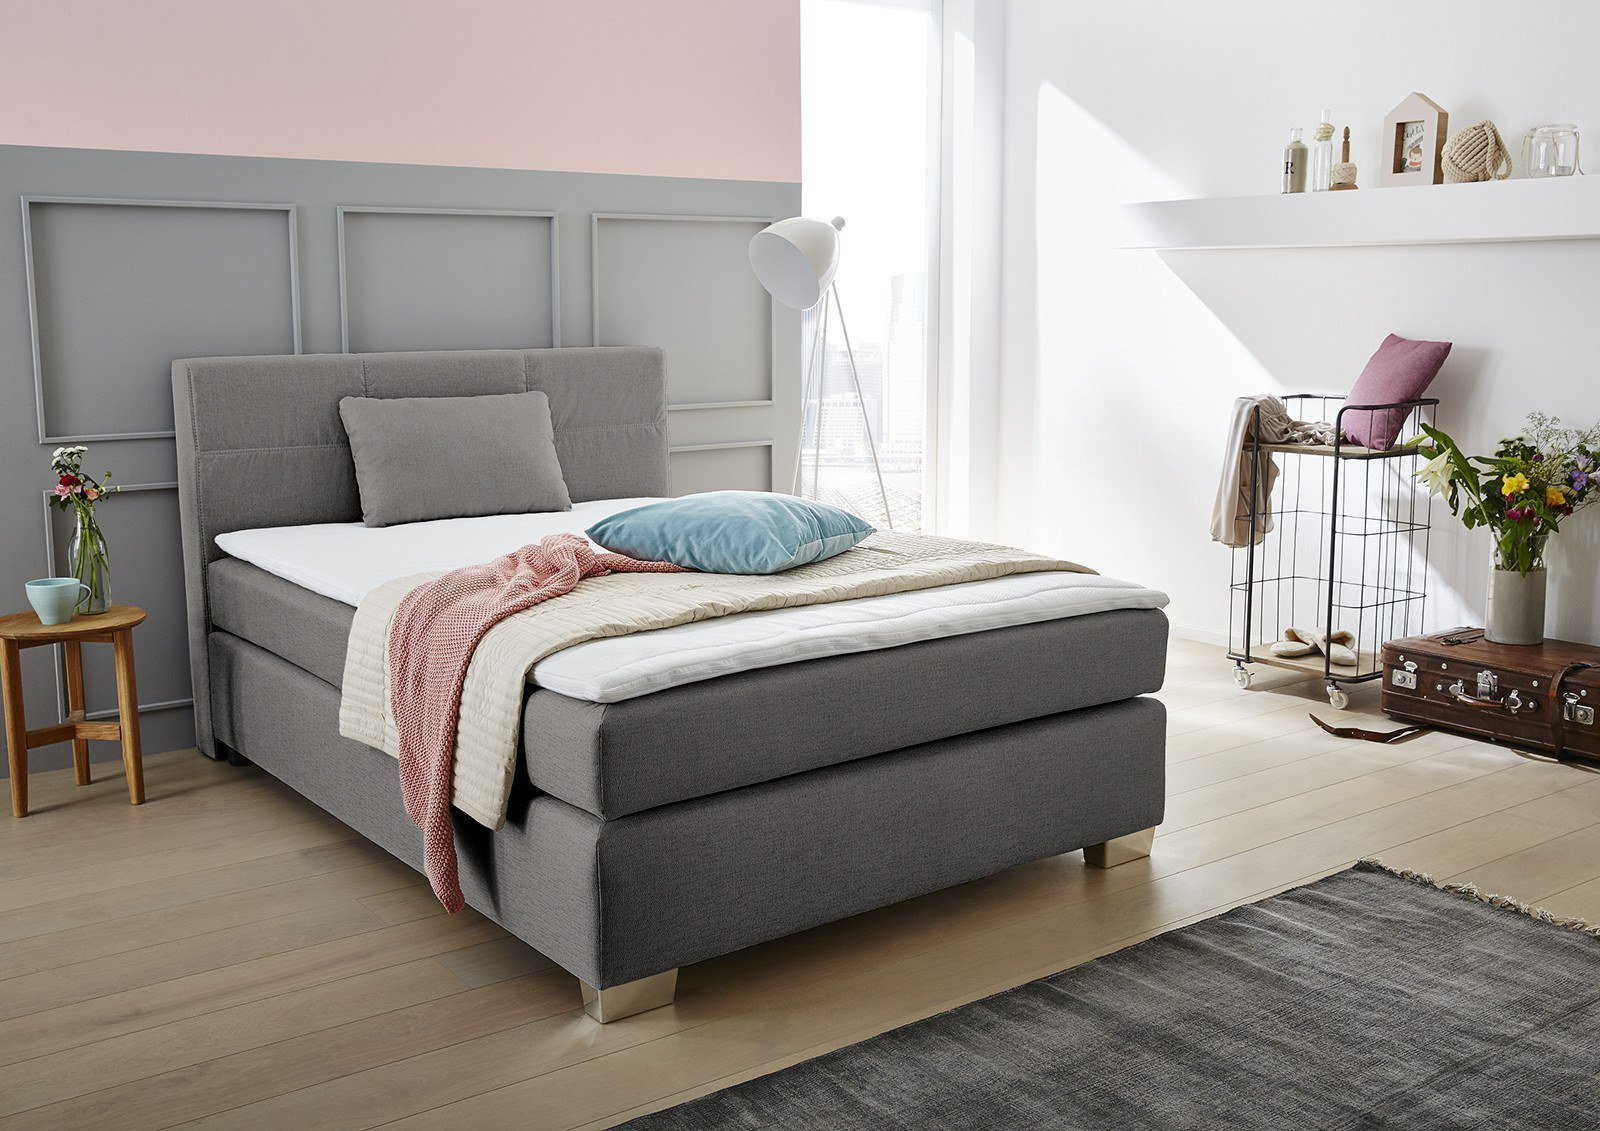 jockenh fer boxspringbett modell evita ruthie in grau. Black Bedroom Furniture Sets. Home Design Ideas